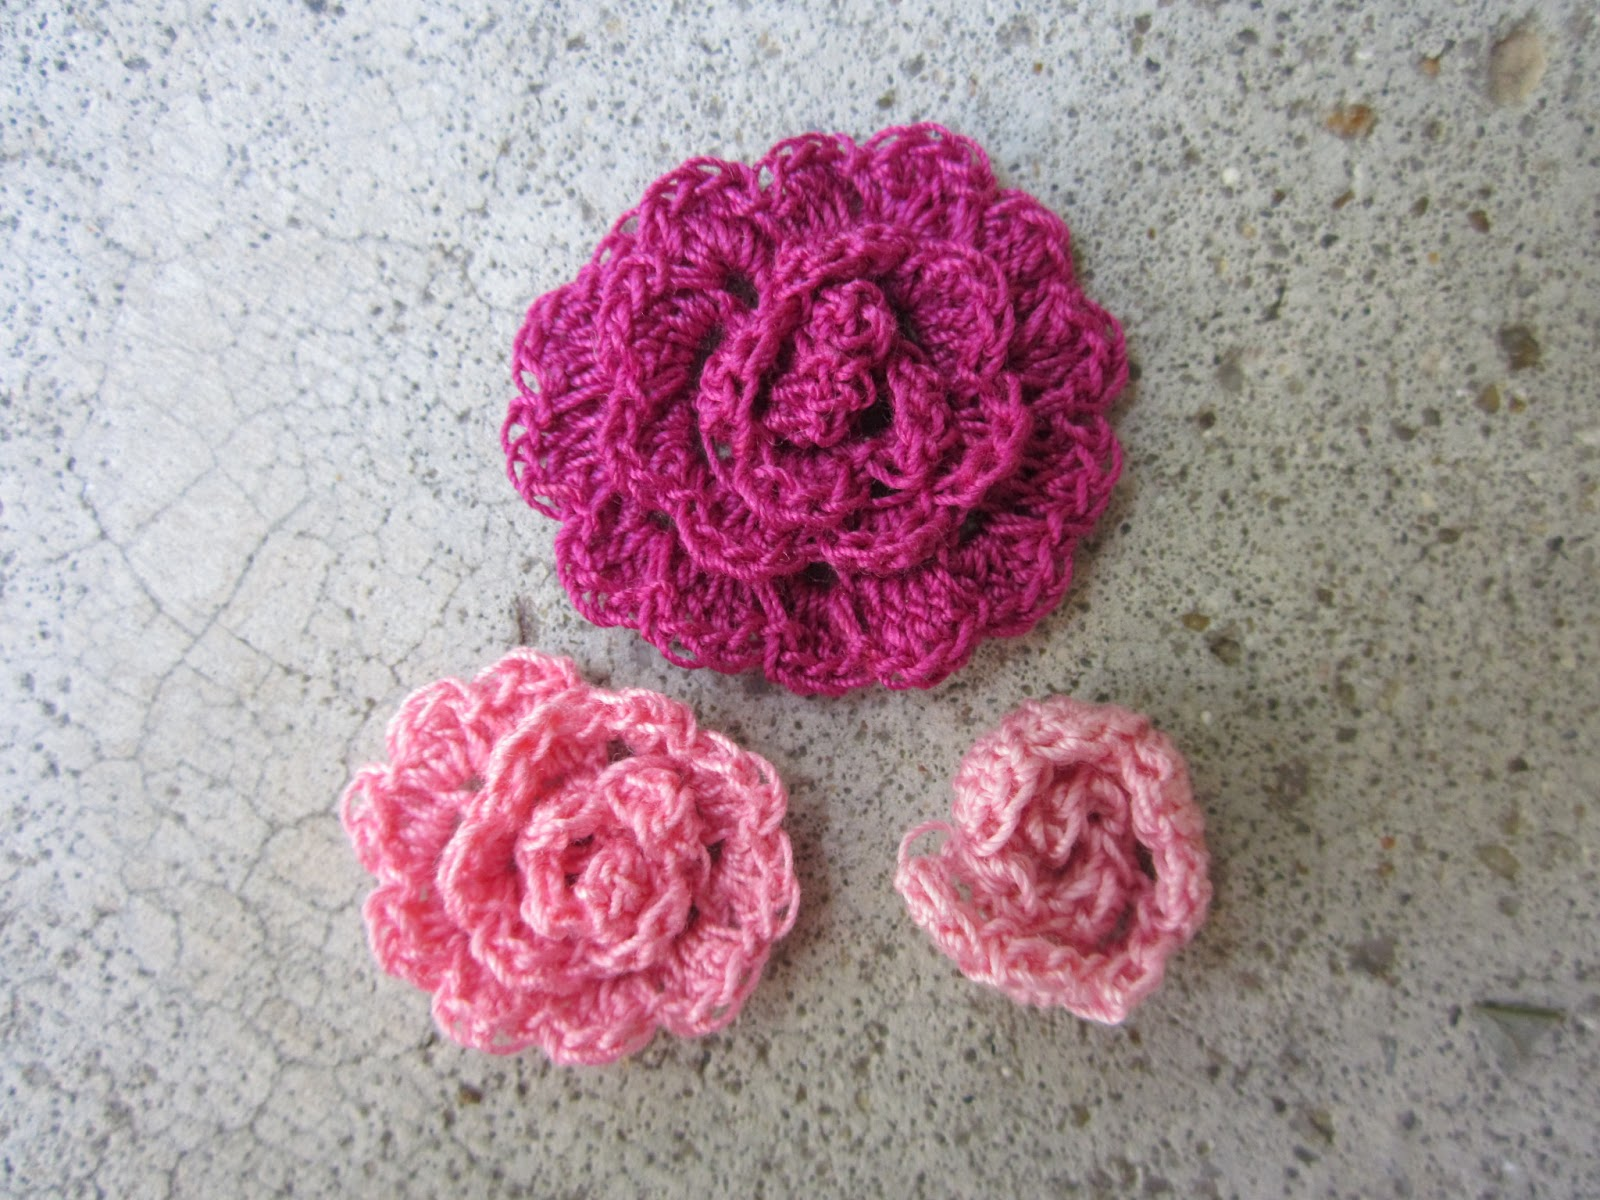 Crochet Rose Pattern No Sew : Primarily Patterns: Cabbage Rose / Peony Crochet Pattern